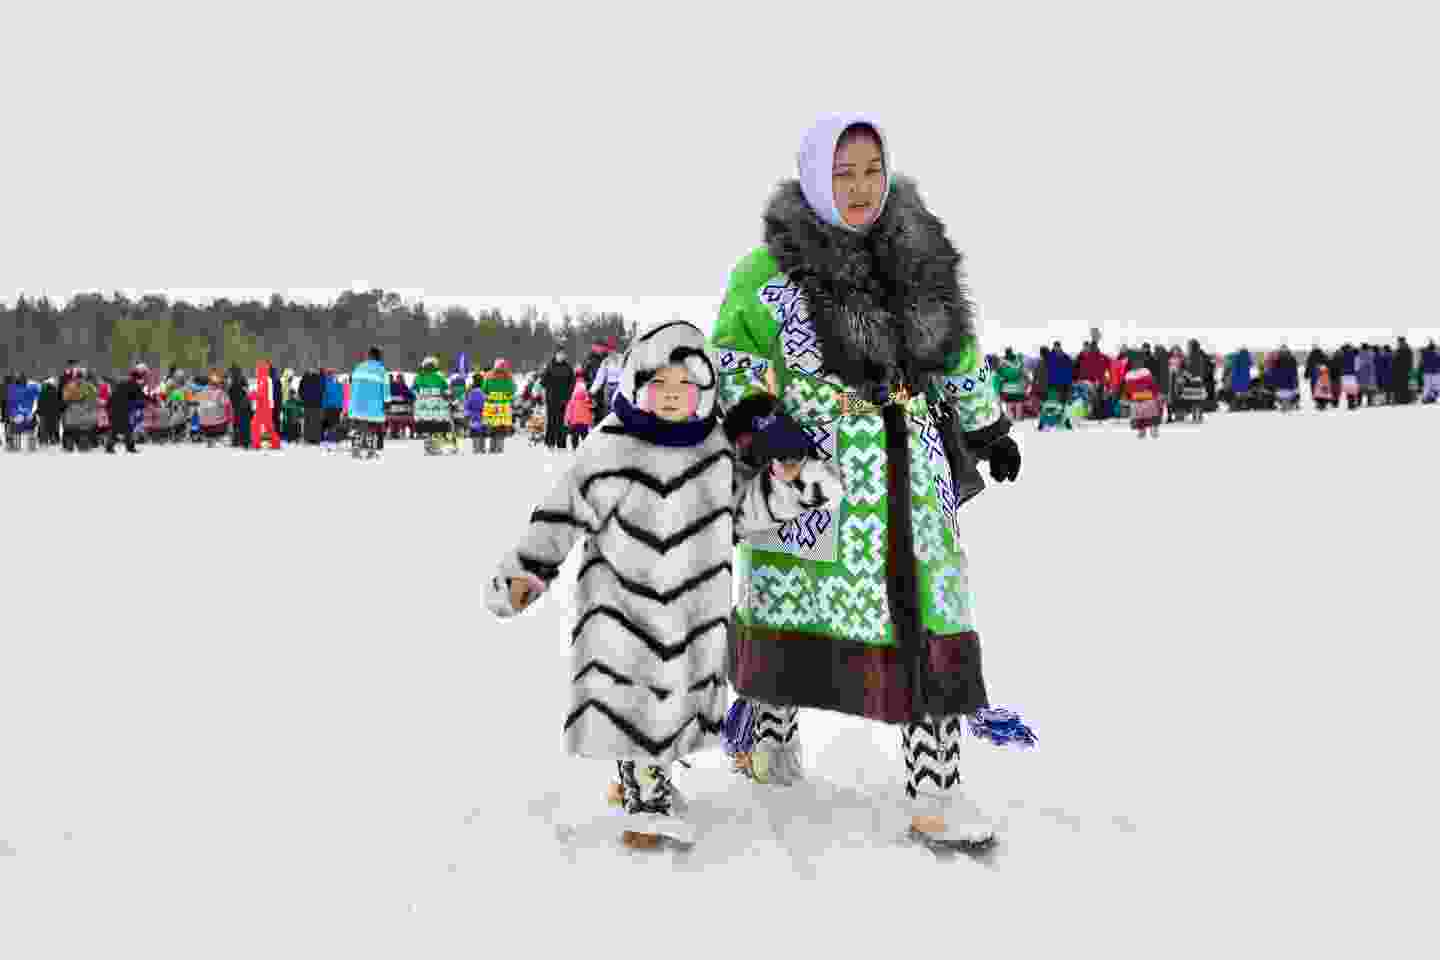 An ethnic Khanty woman with a boy, wearing traditional khanty winter coats at the Reindeer Herder Festival (Shutterstock)